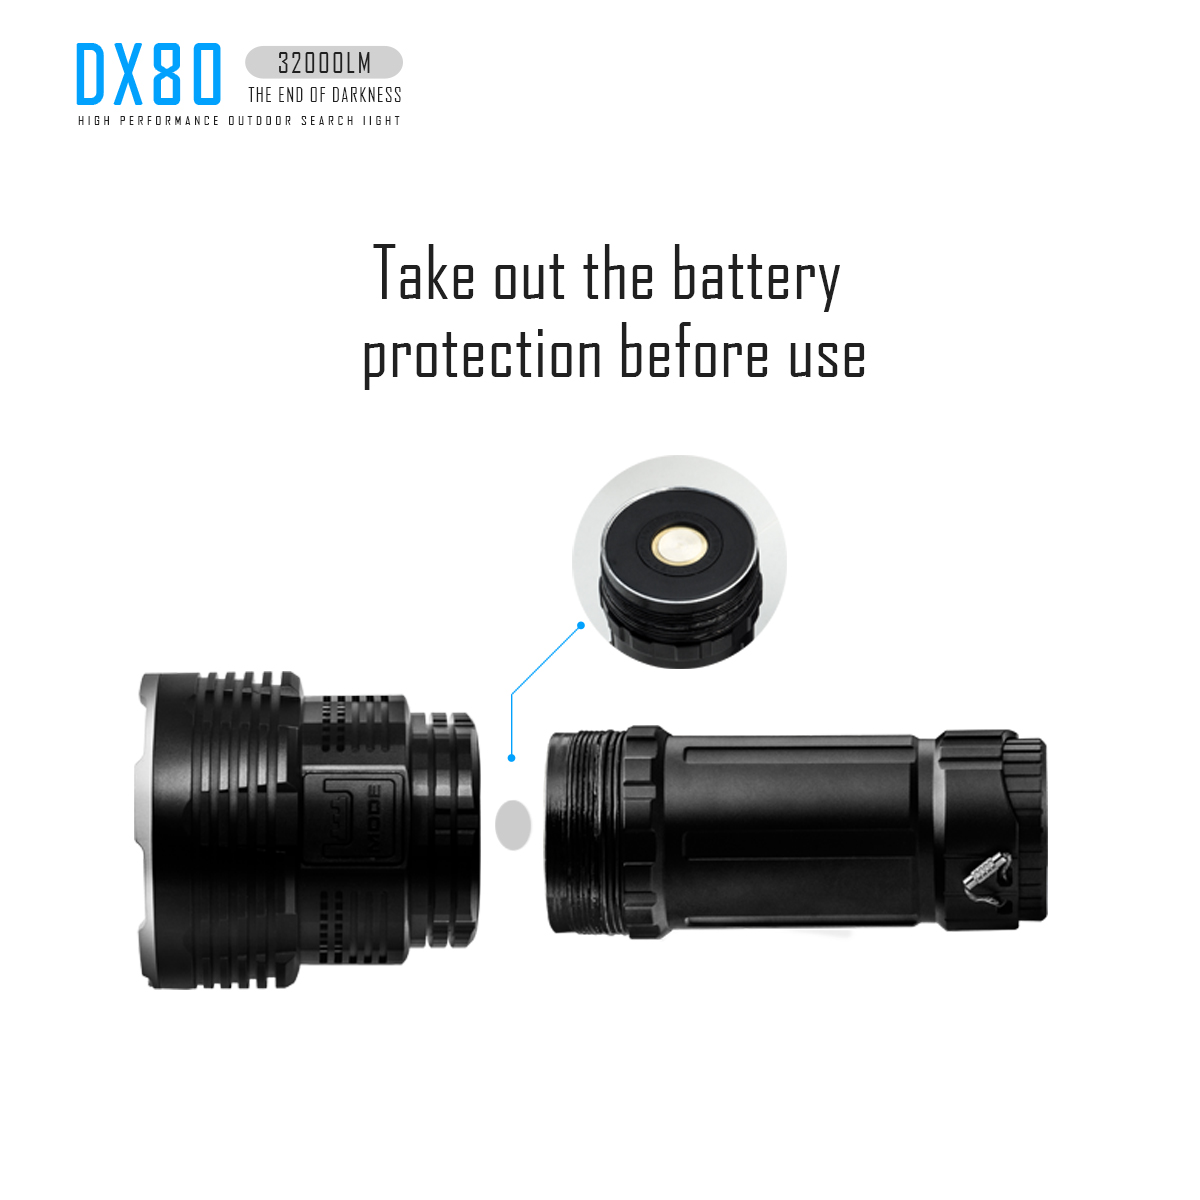 Купить с кэшбэком Imalent DX80 Flashlight Power meter Cycling Lanternas de led de alta potencia Cycling Outdoor Torch cilcismo Camping High Power